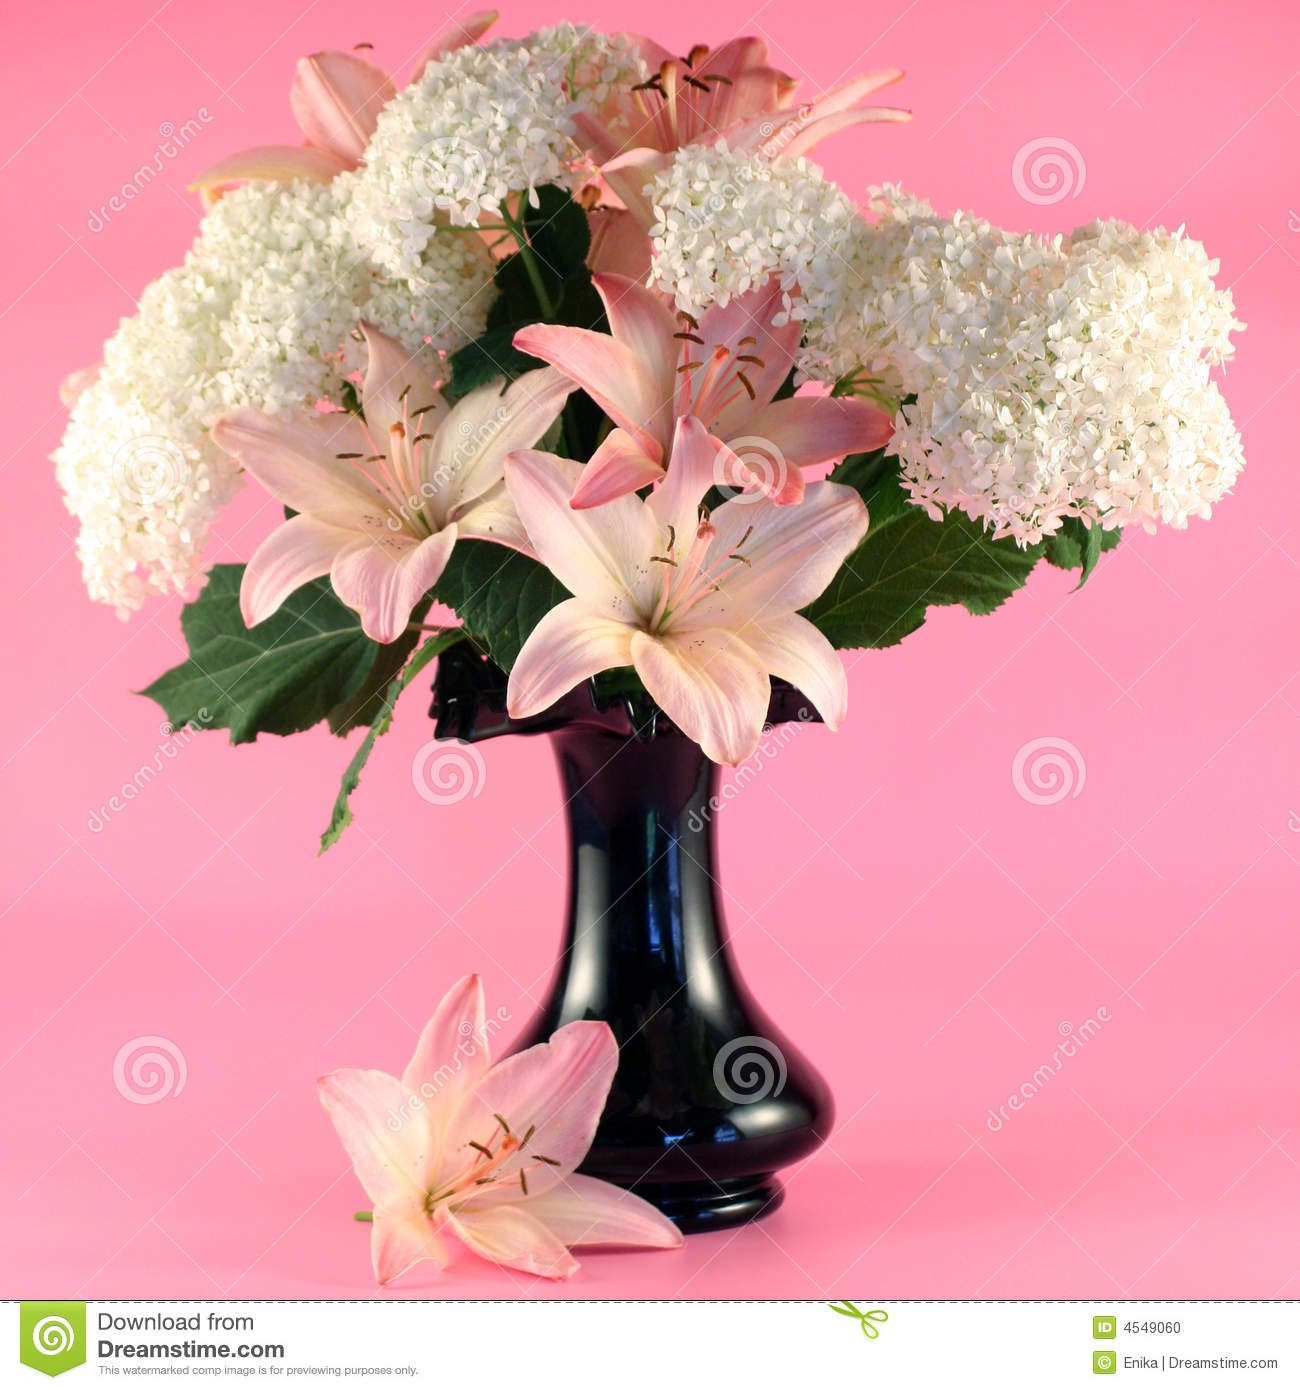 Flowers of lily and hydrangea stock photo image of floral petal flowers of lily and hydrangea izmirmasajfo